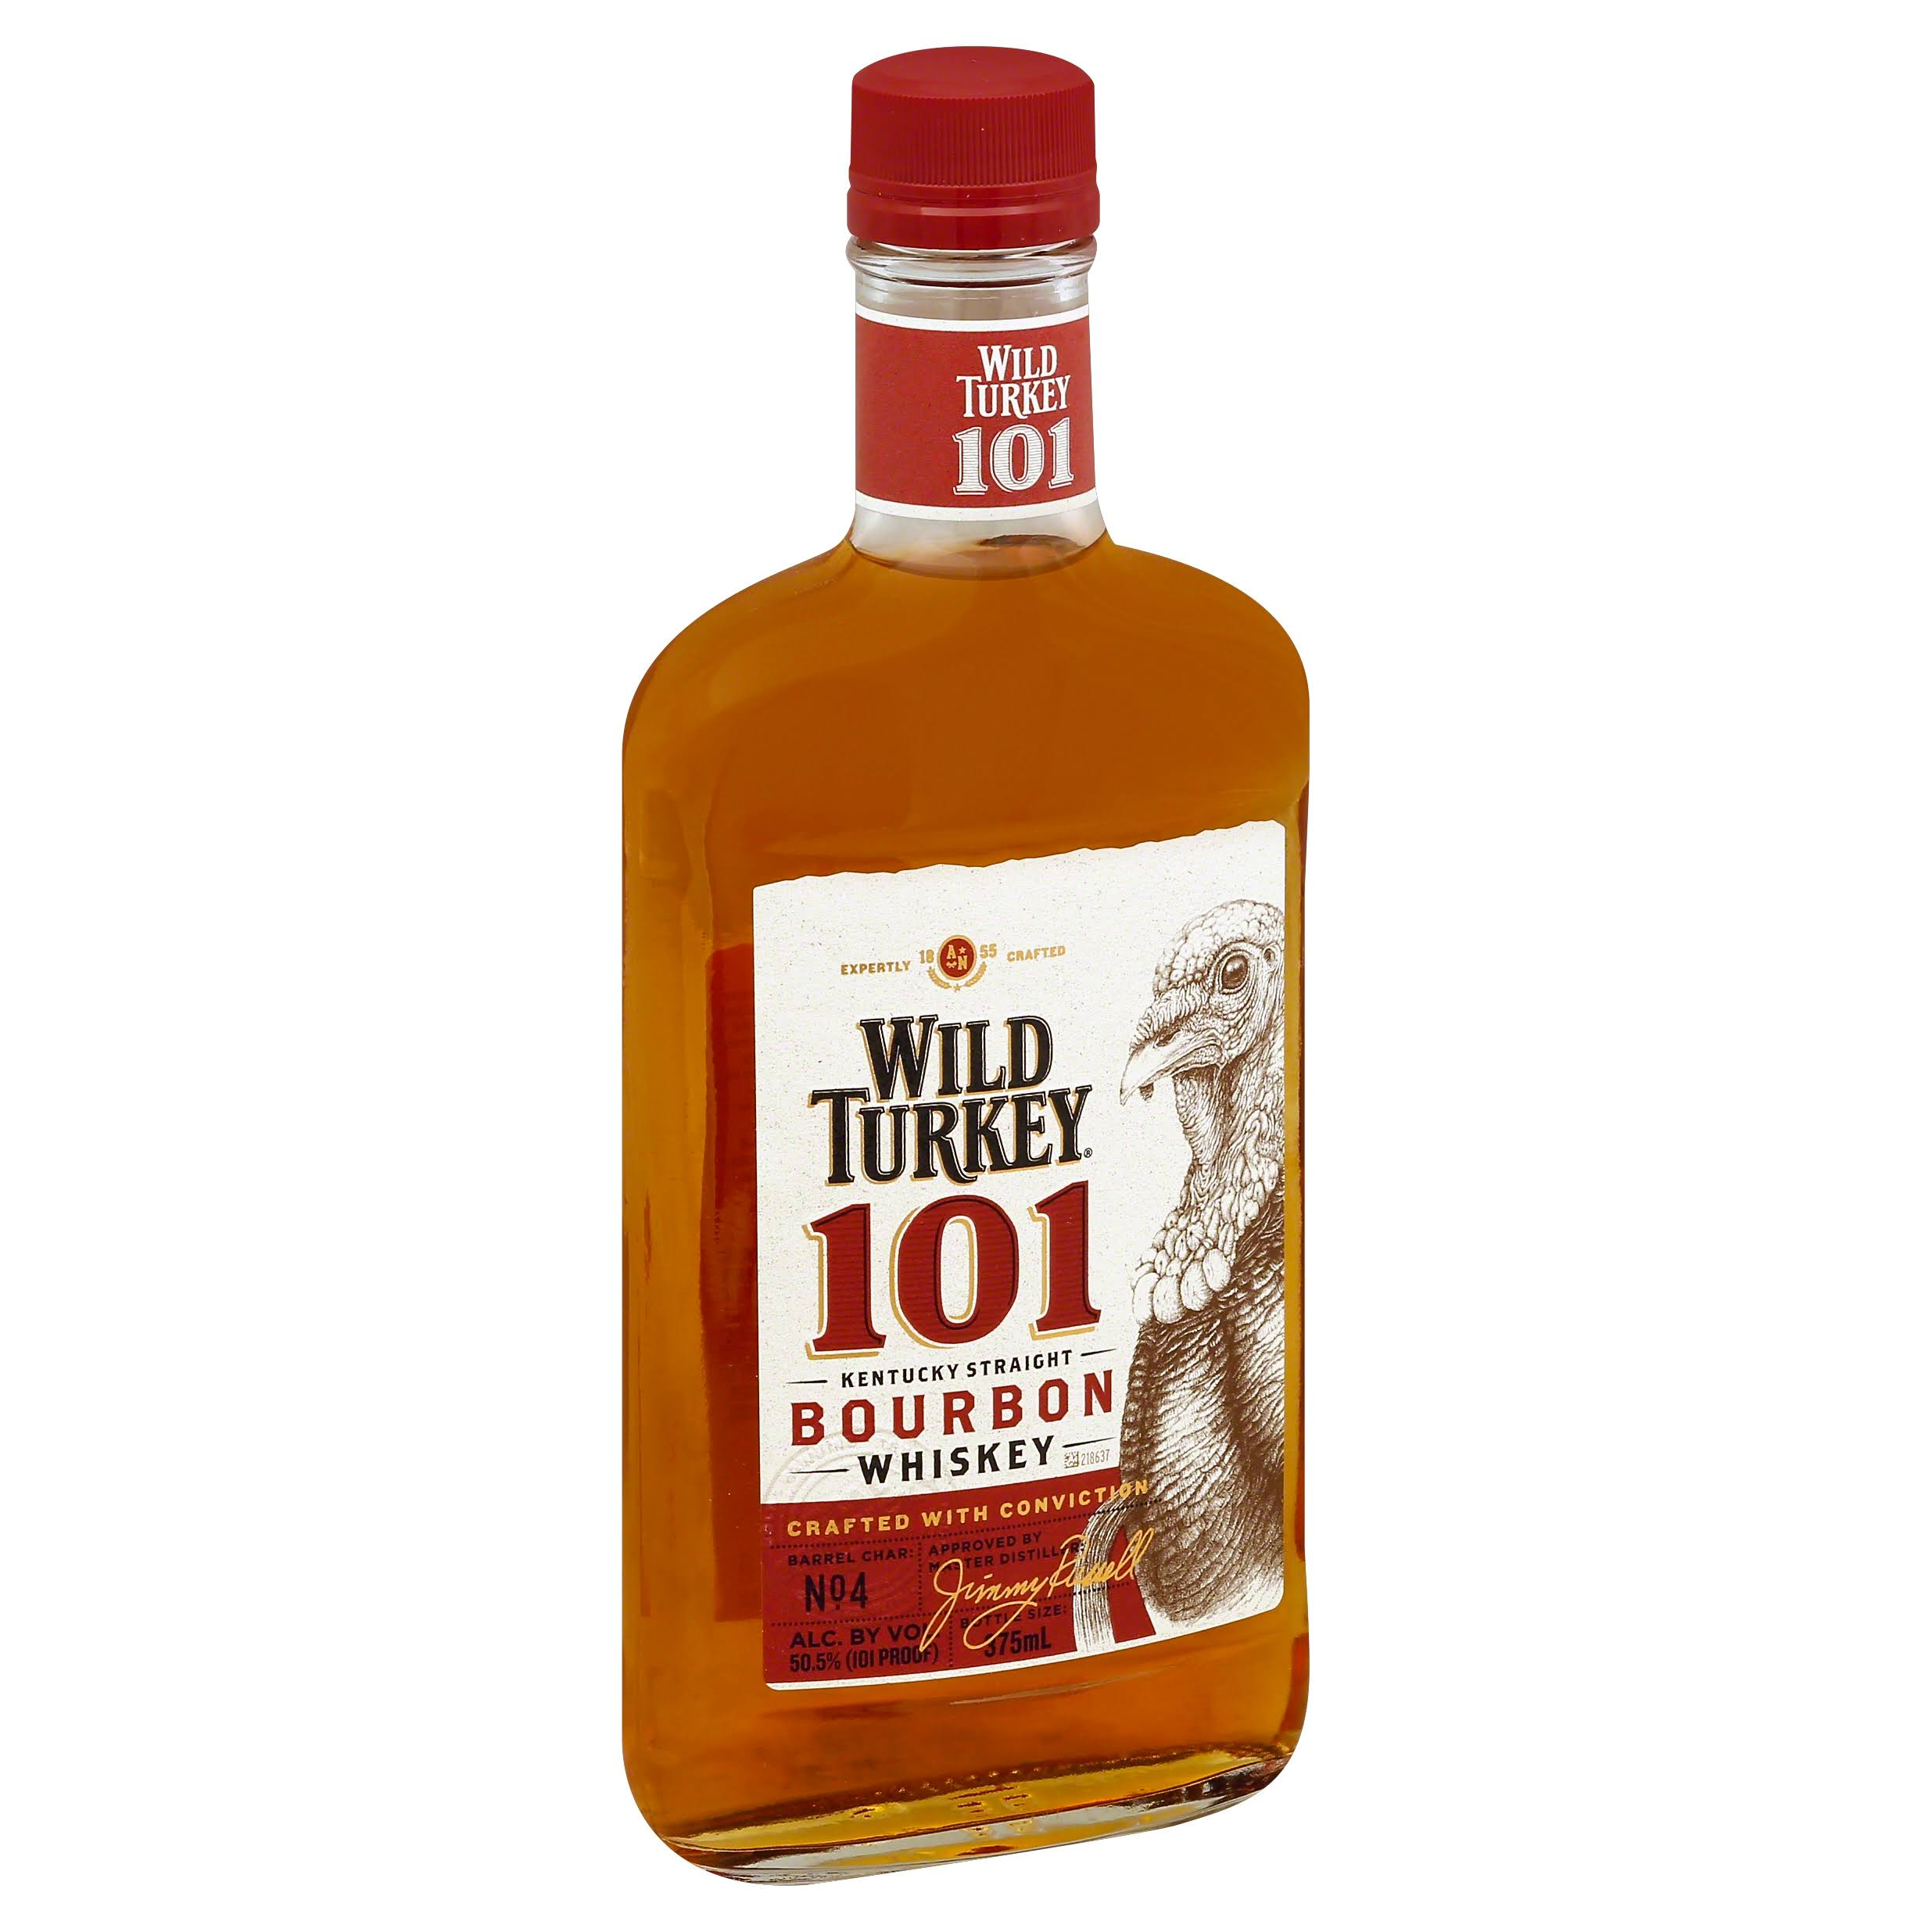 Wild Turkey Whiskey, Kentucky Straight Bourbon, 101 - 375 ml